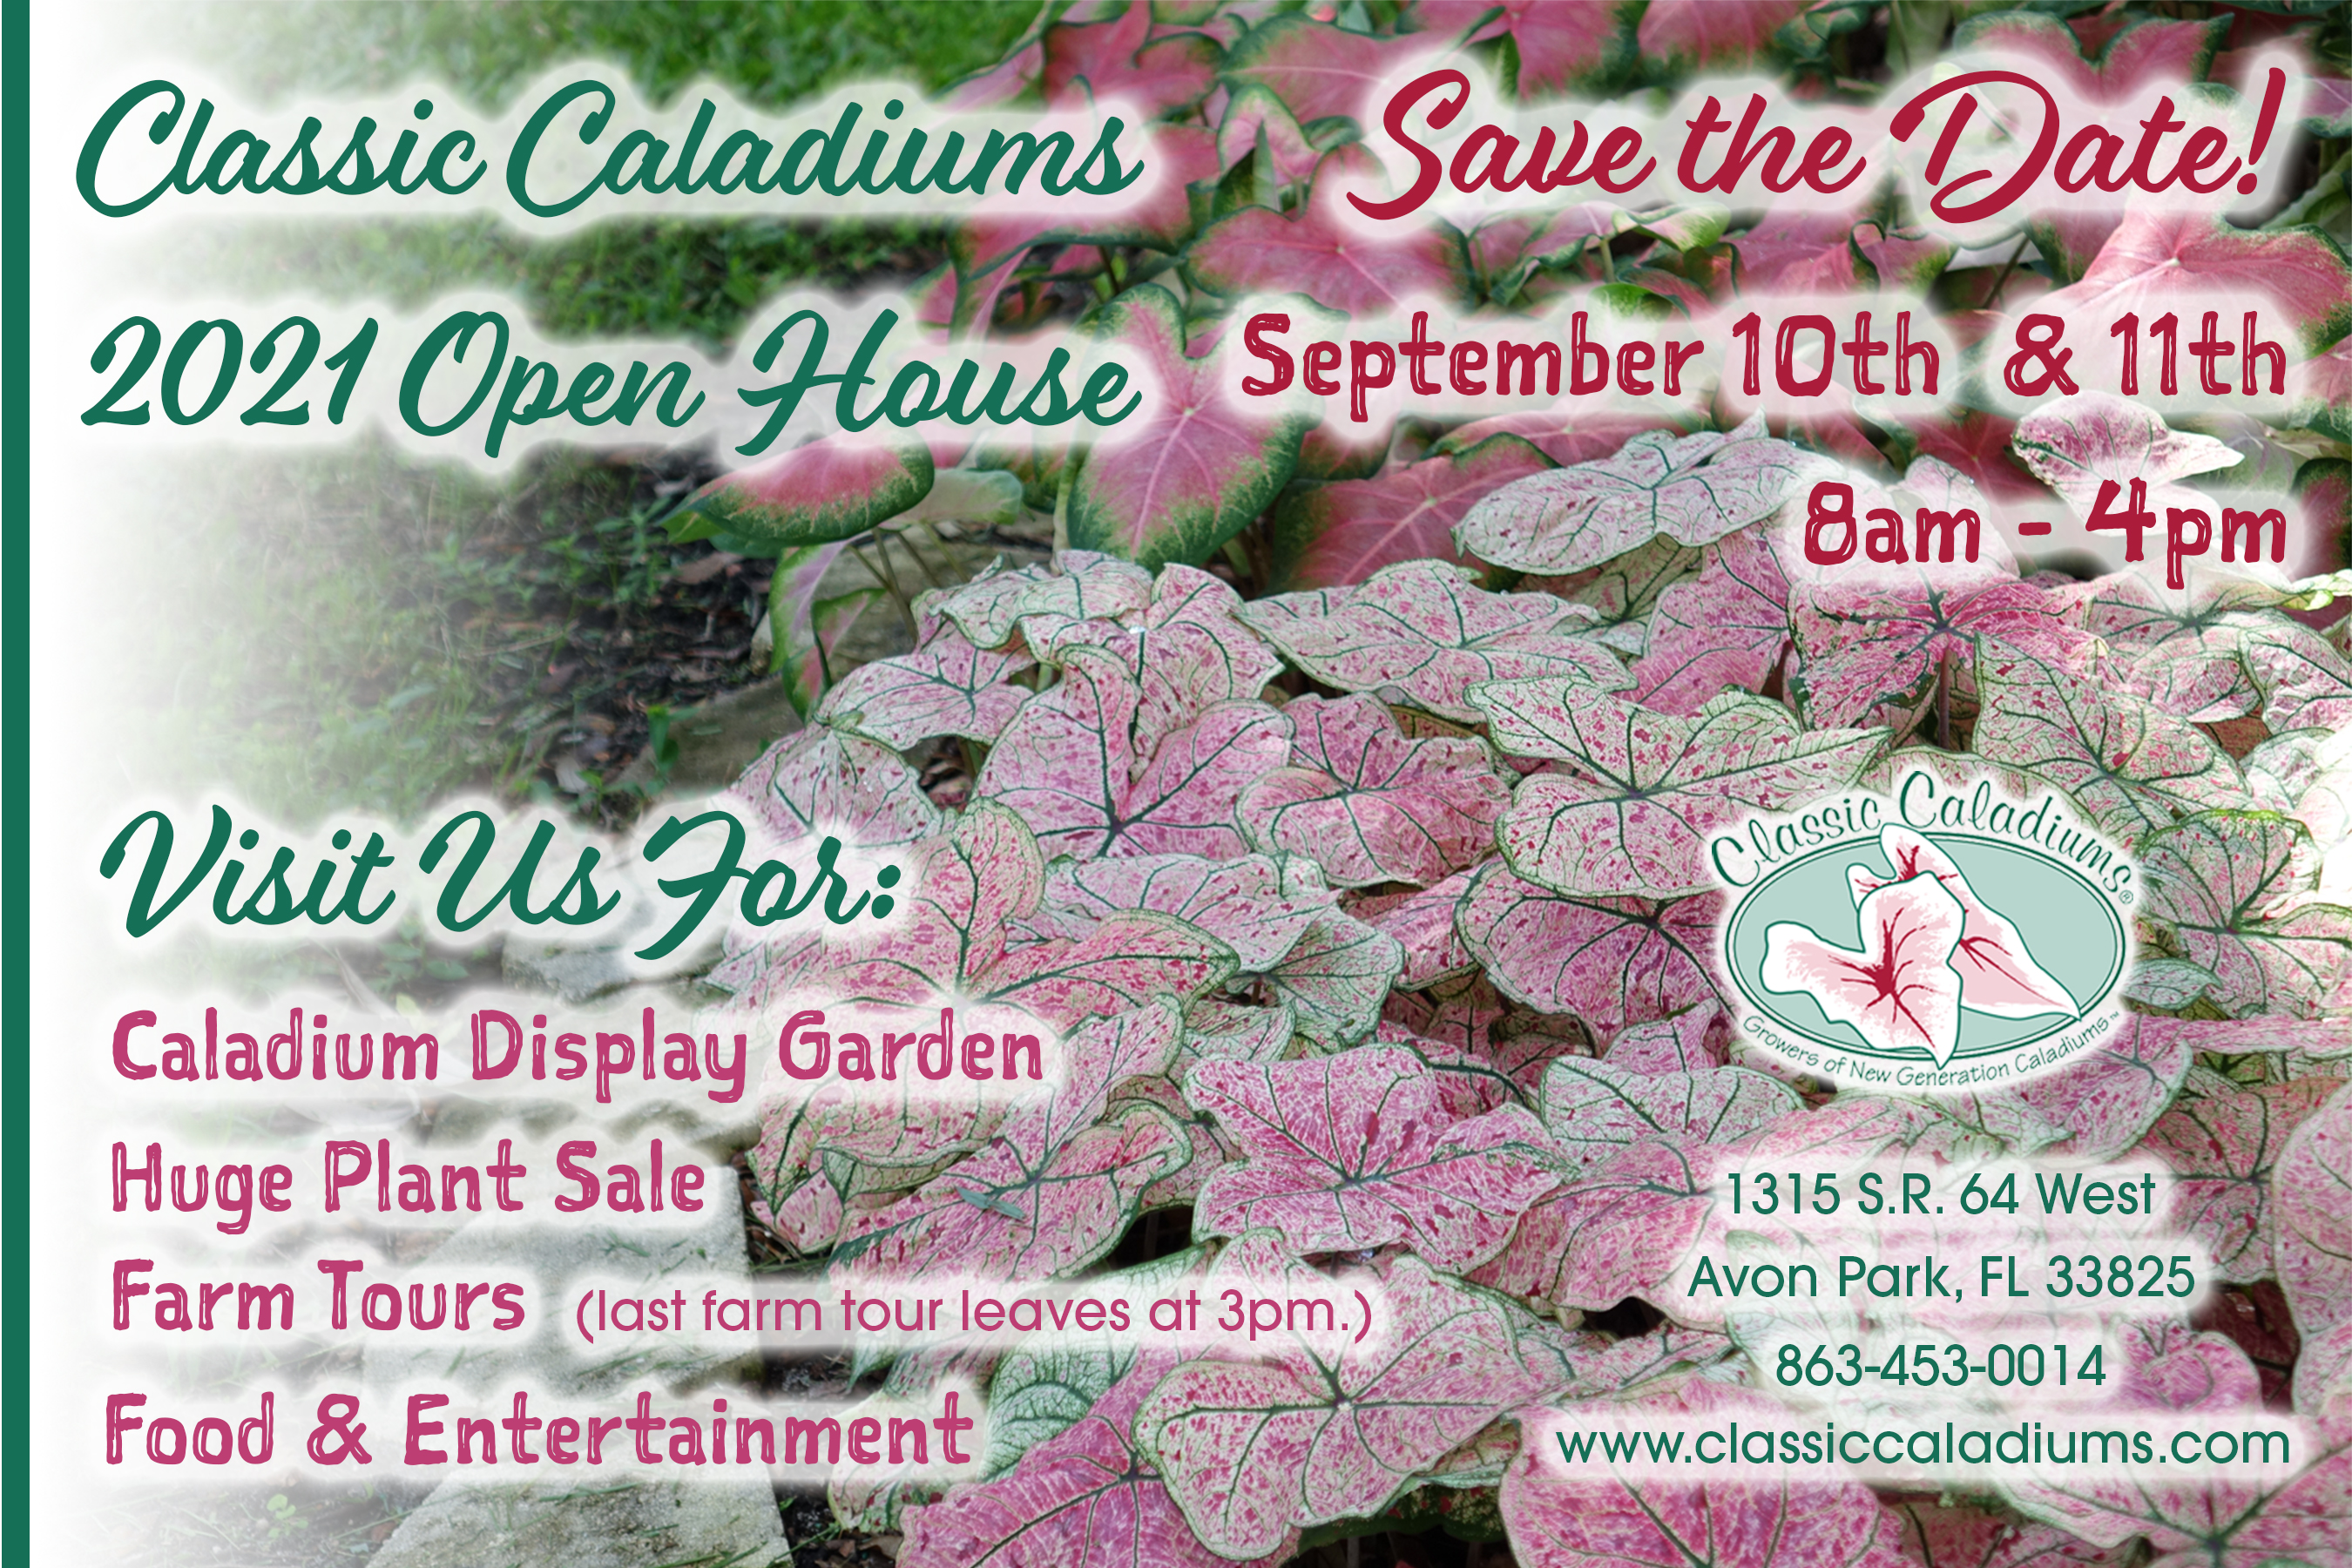 Classic Caladiums Annual Open House & Tours